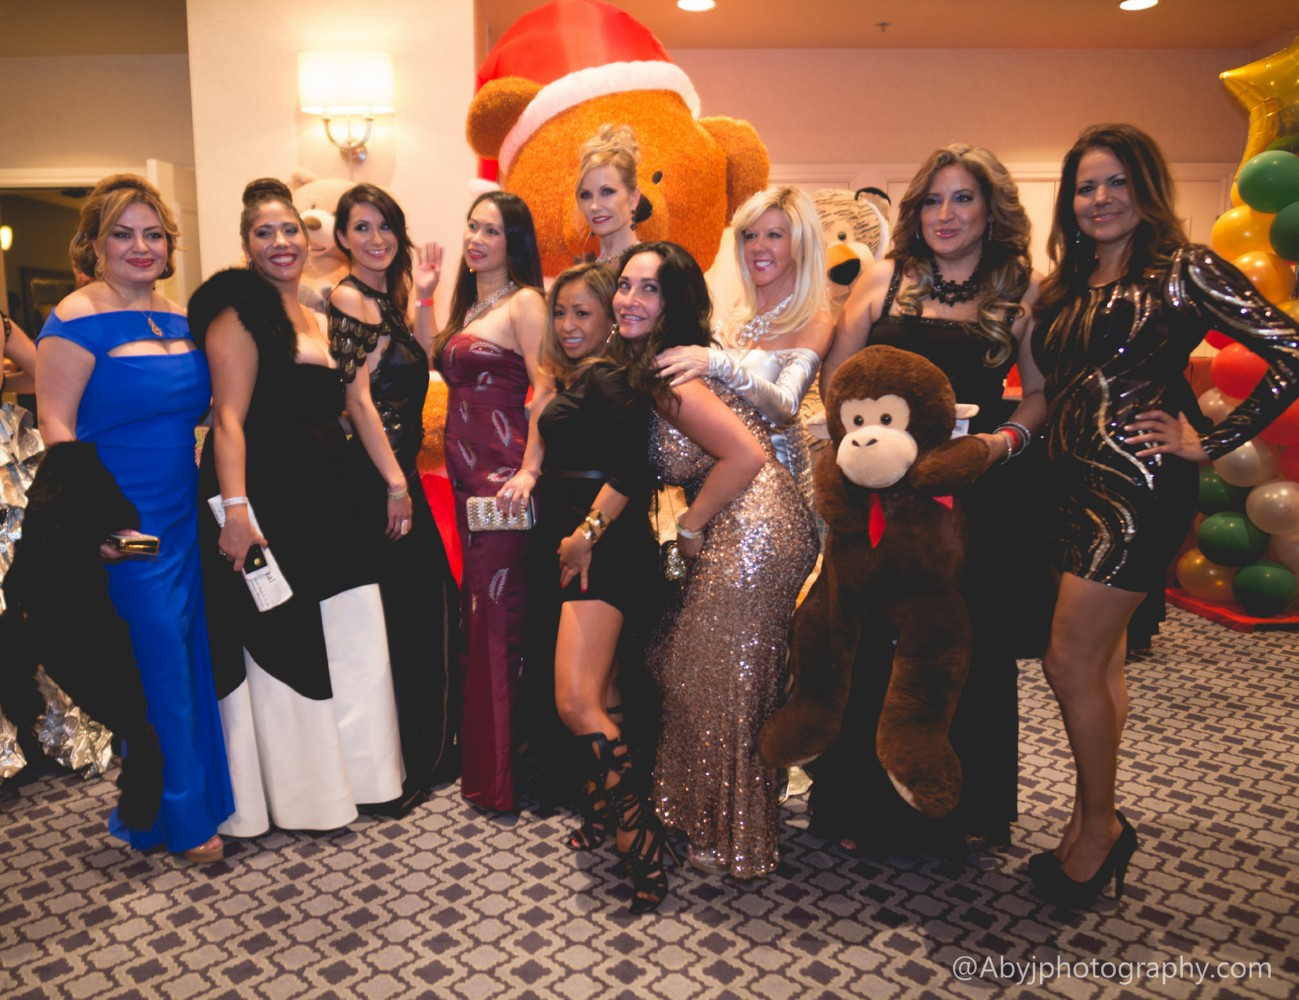 ABYJ_Photography_2016_Teddy_Ball - 344.jpg